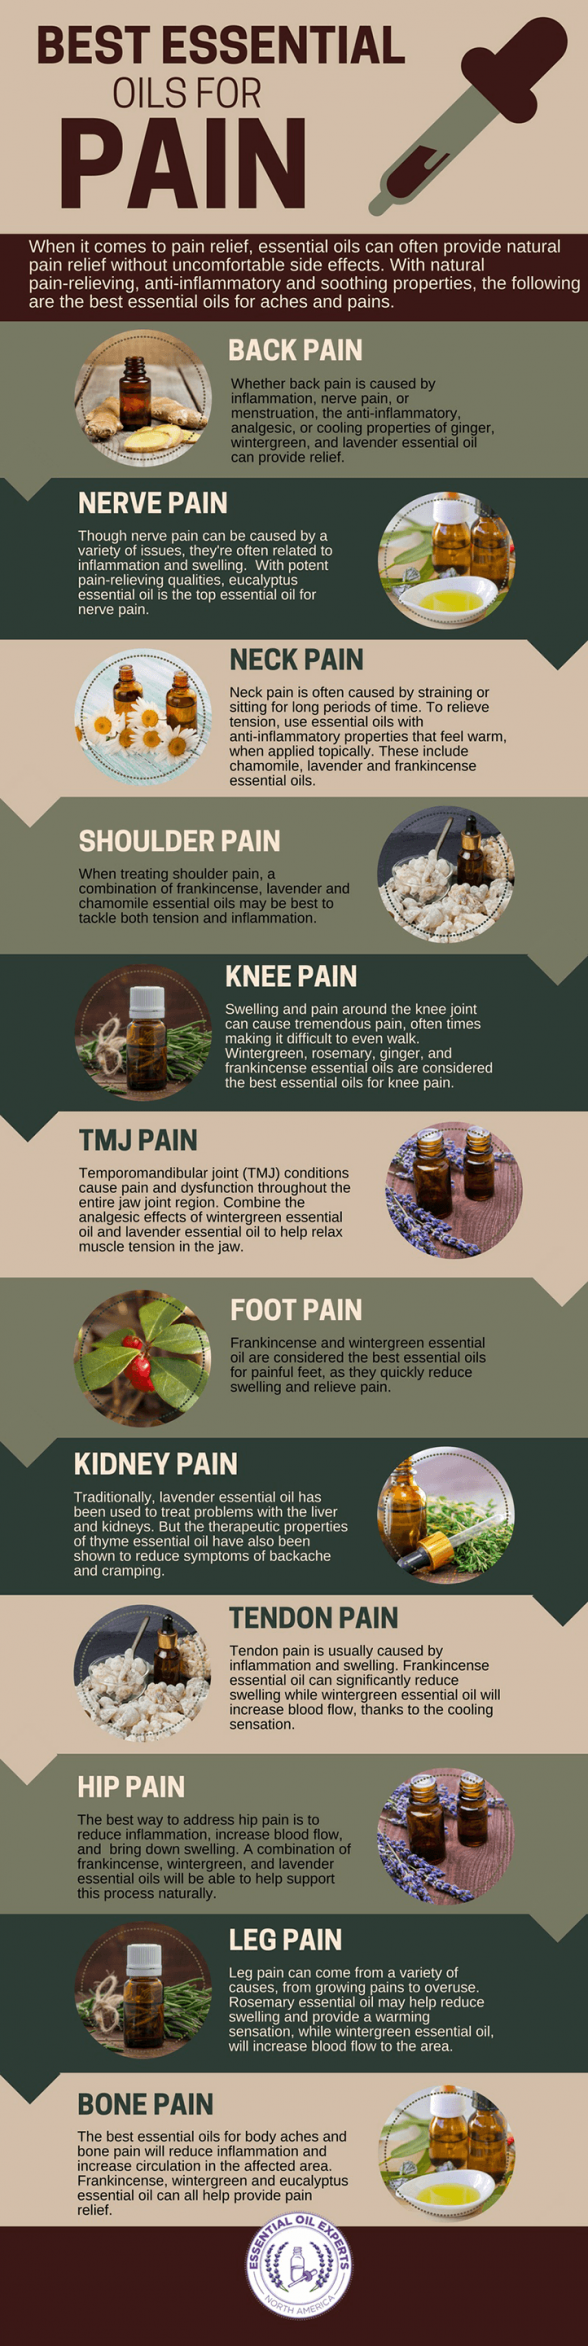 List Of Pinterest Aromaterapi Natural Pictures Essential Oil Aroma Terapi The Most Effective Oils For Pain Including Back